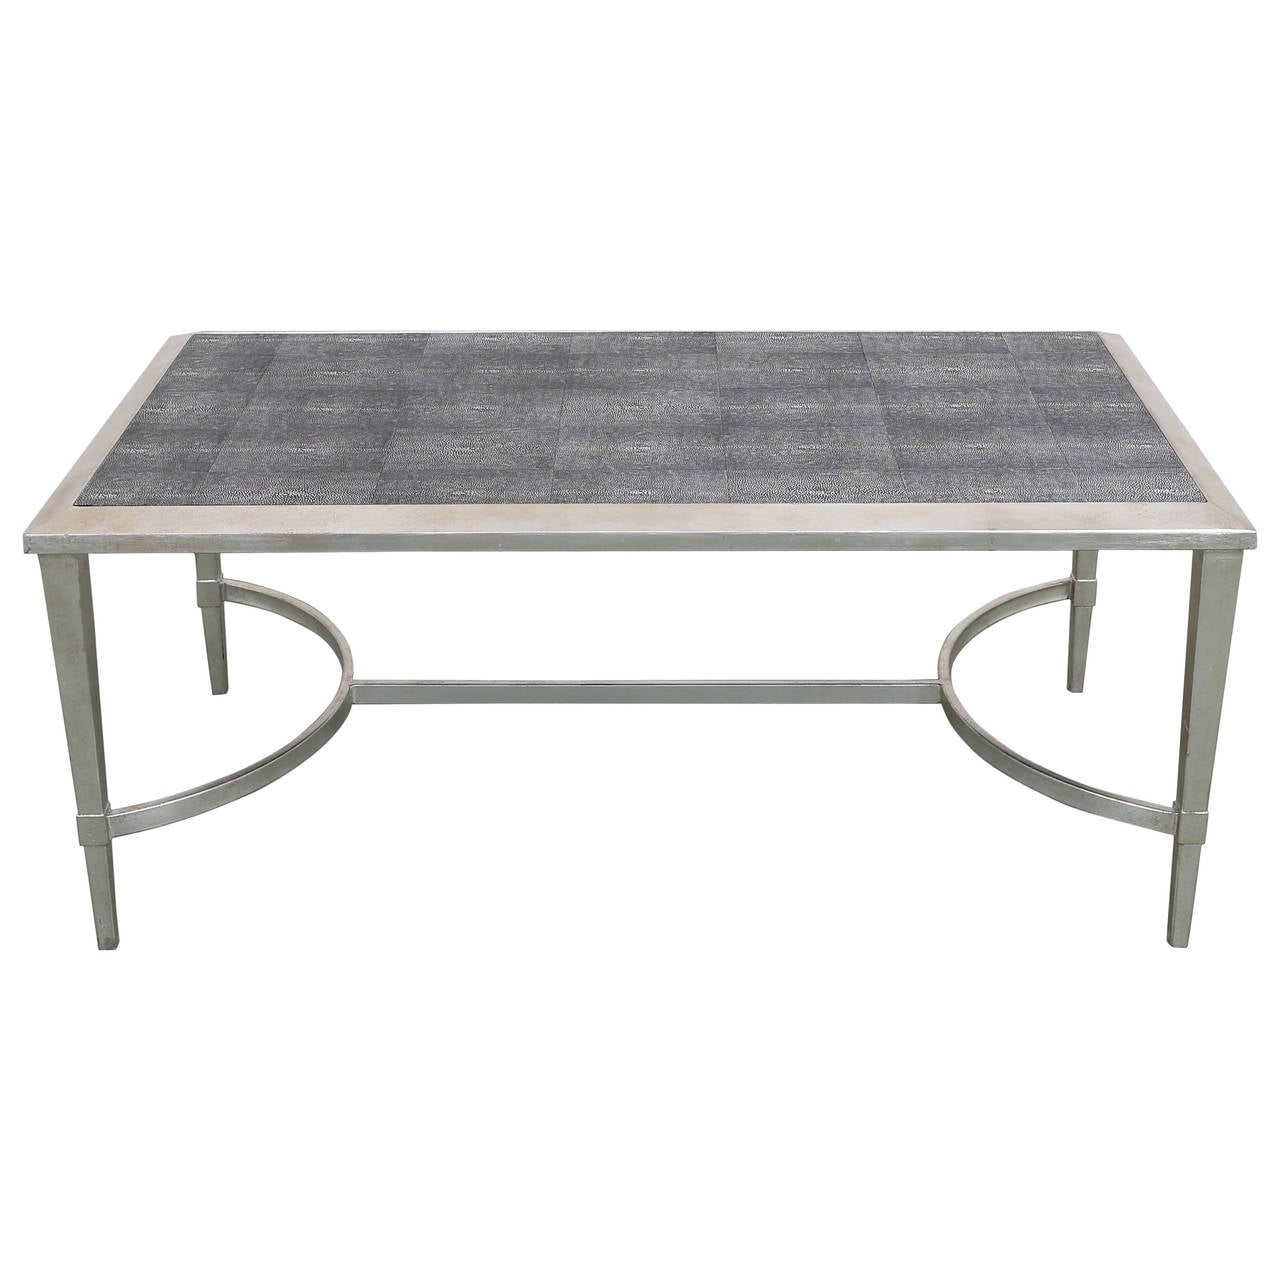 Hollywood Regency Faux Shagreen Leather And Silver Leaf Coffee Table For Sale At 1stdibs